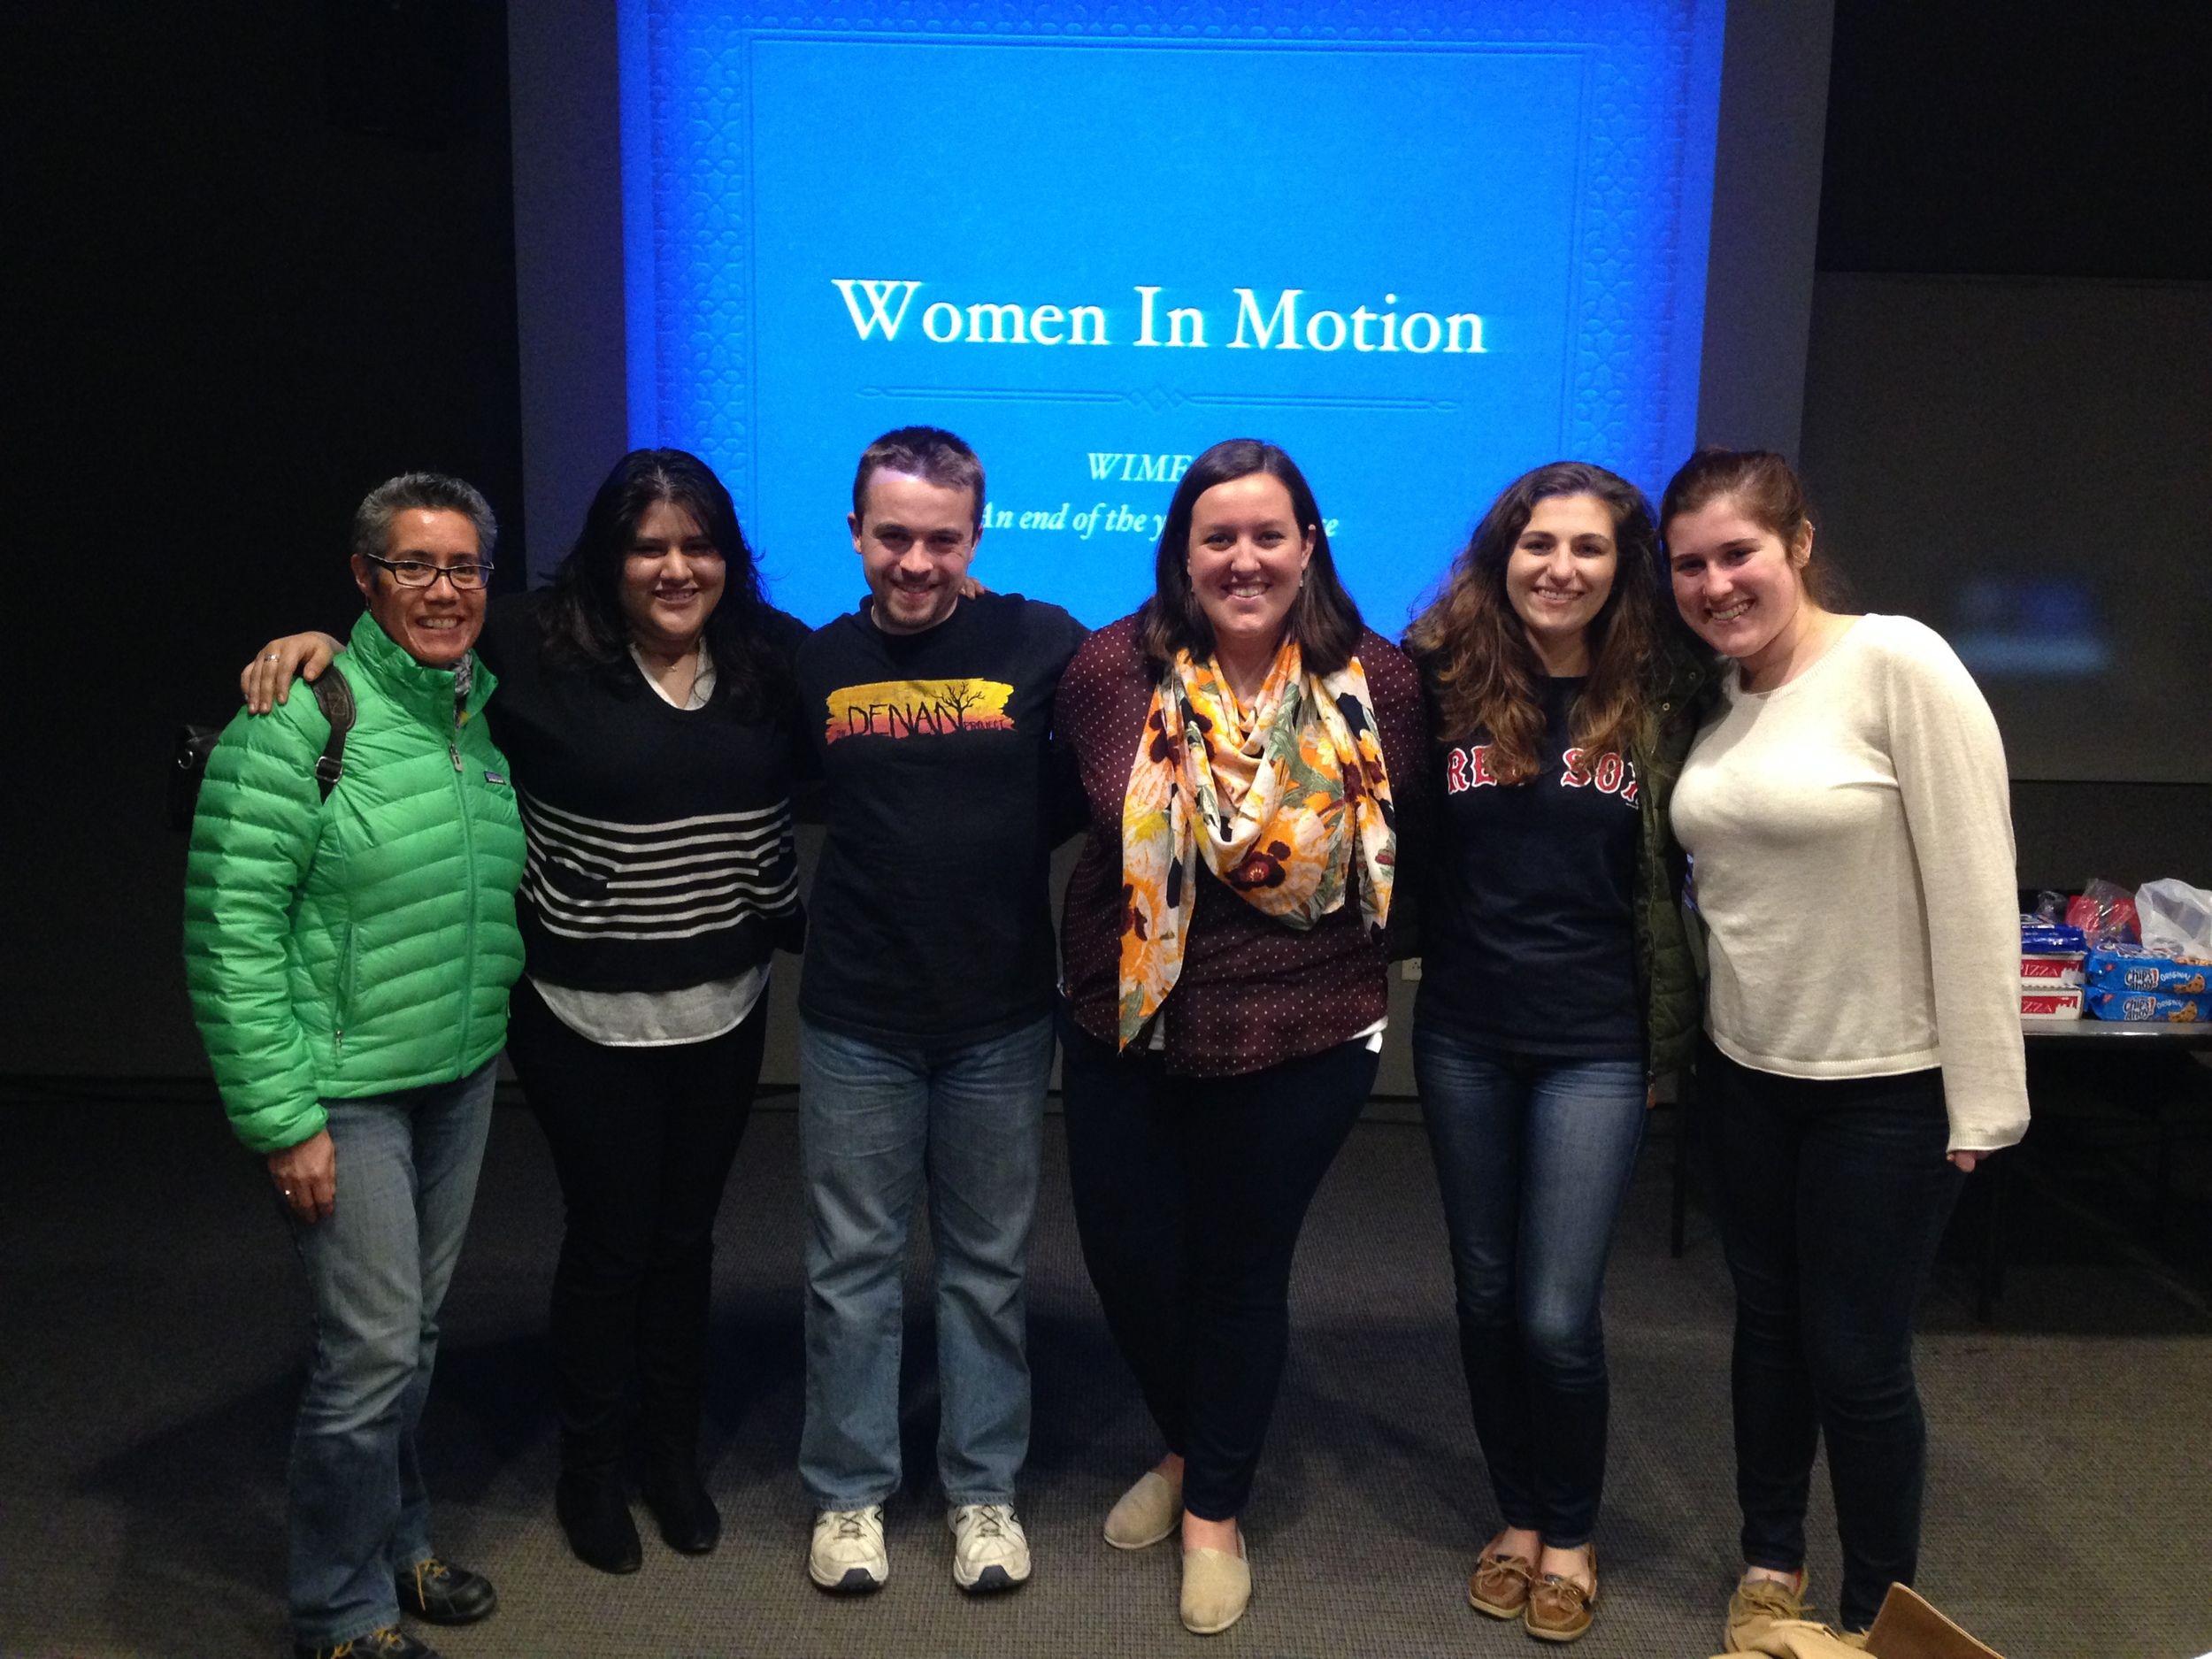 Advising Women in Motion at Emerson College